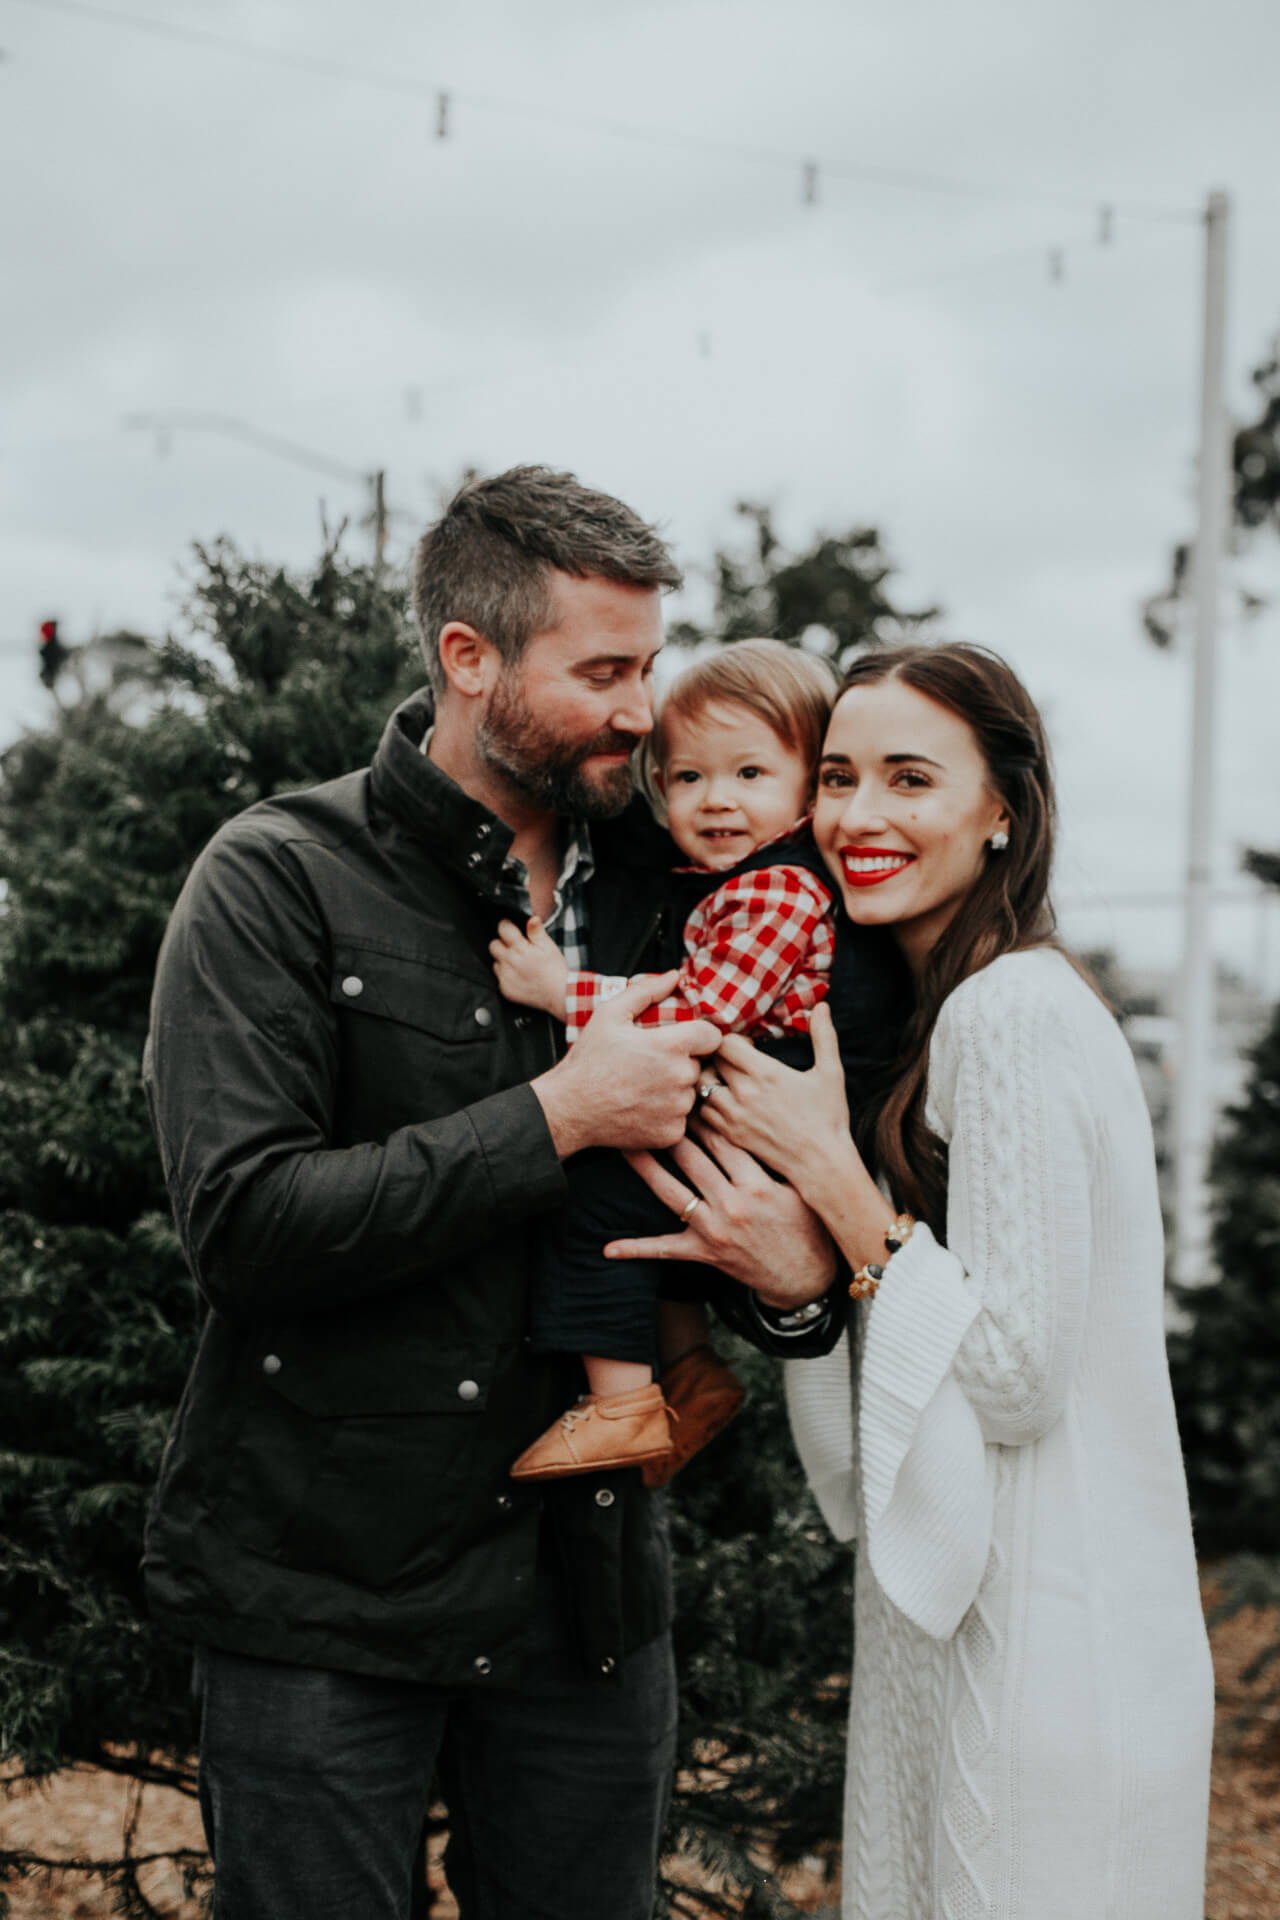 family photos at Christmas Tree lot in Southern California - M Loves M @marmar